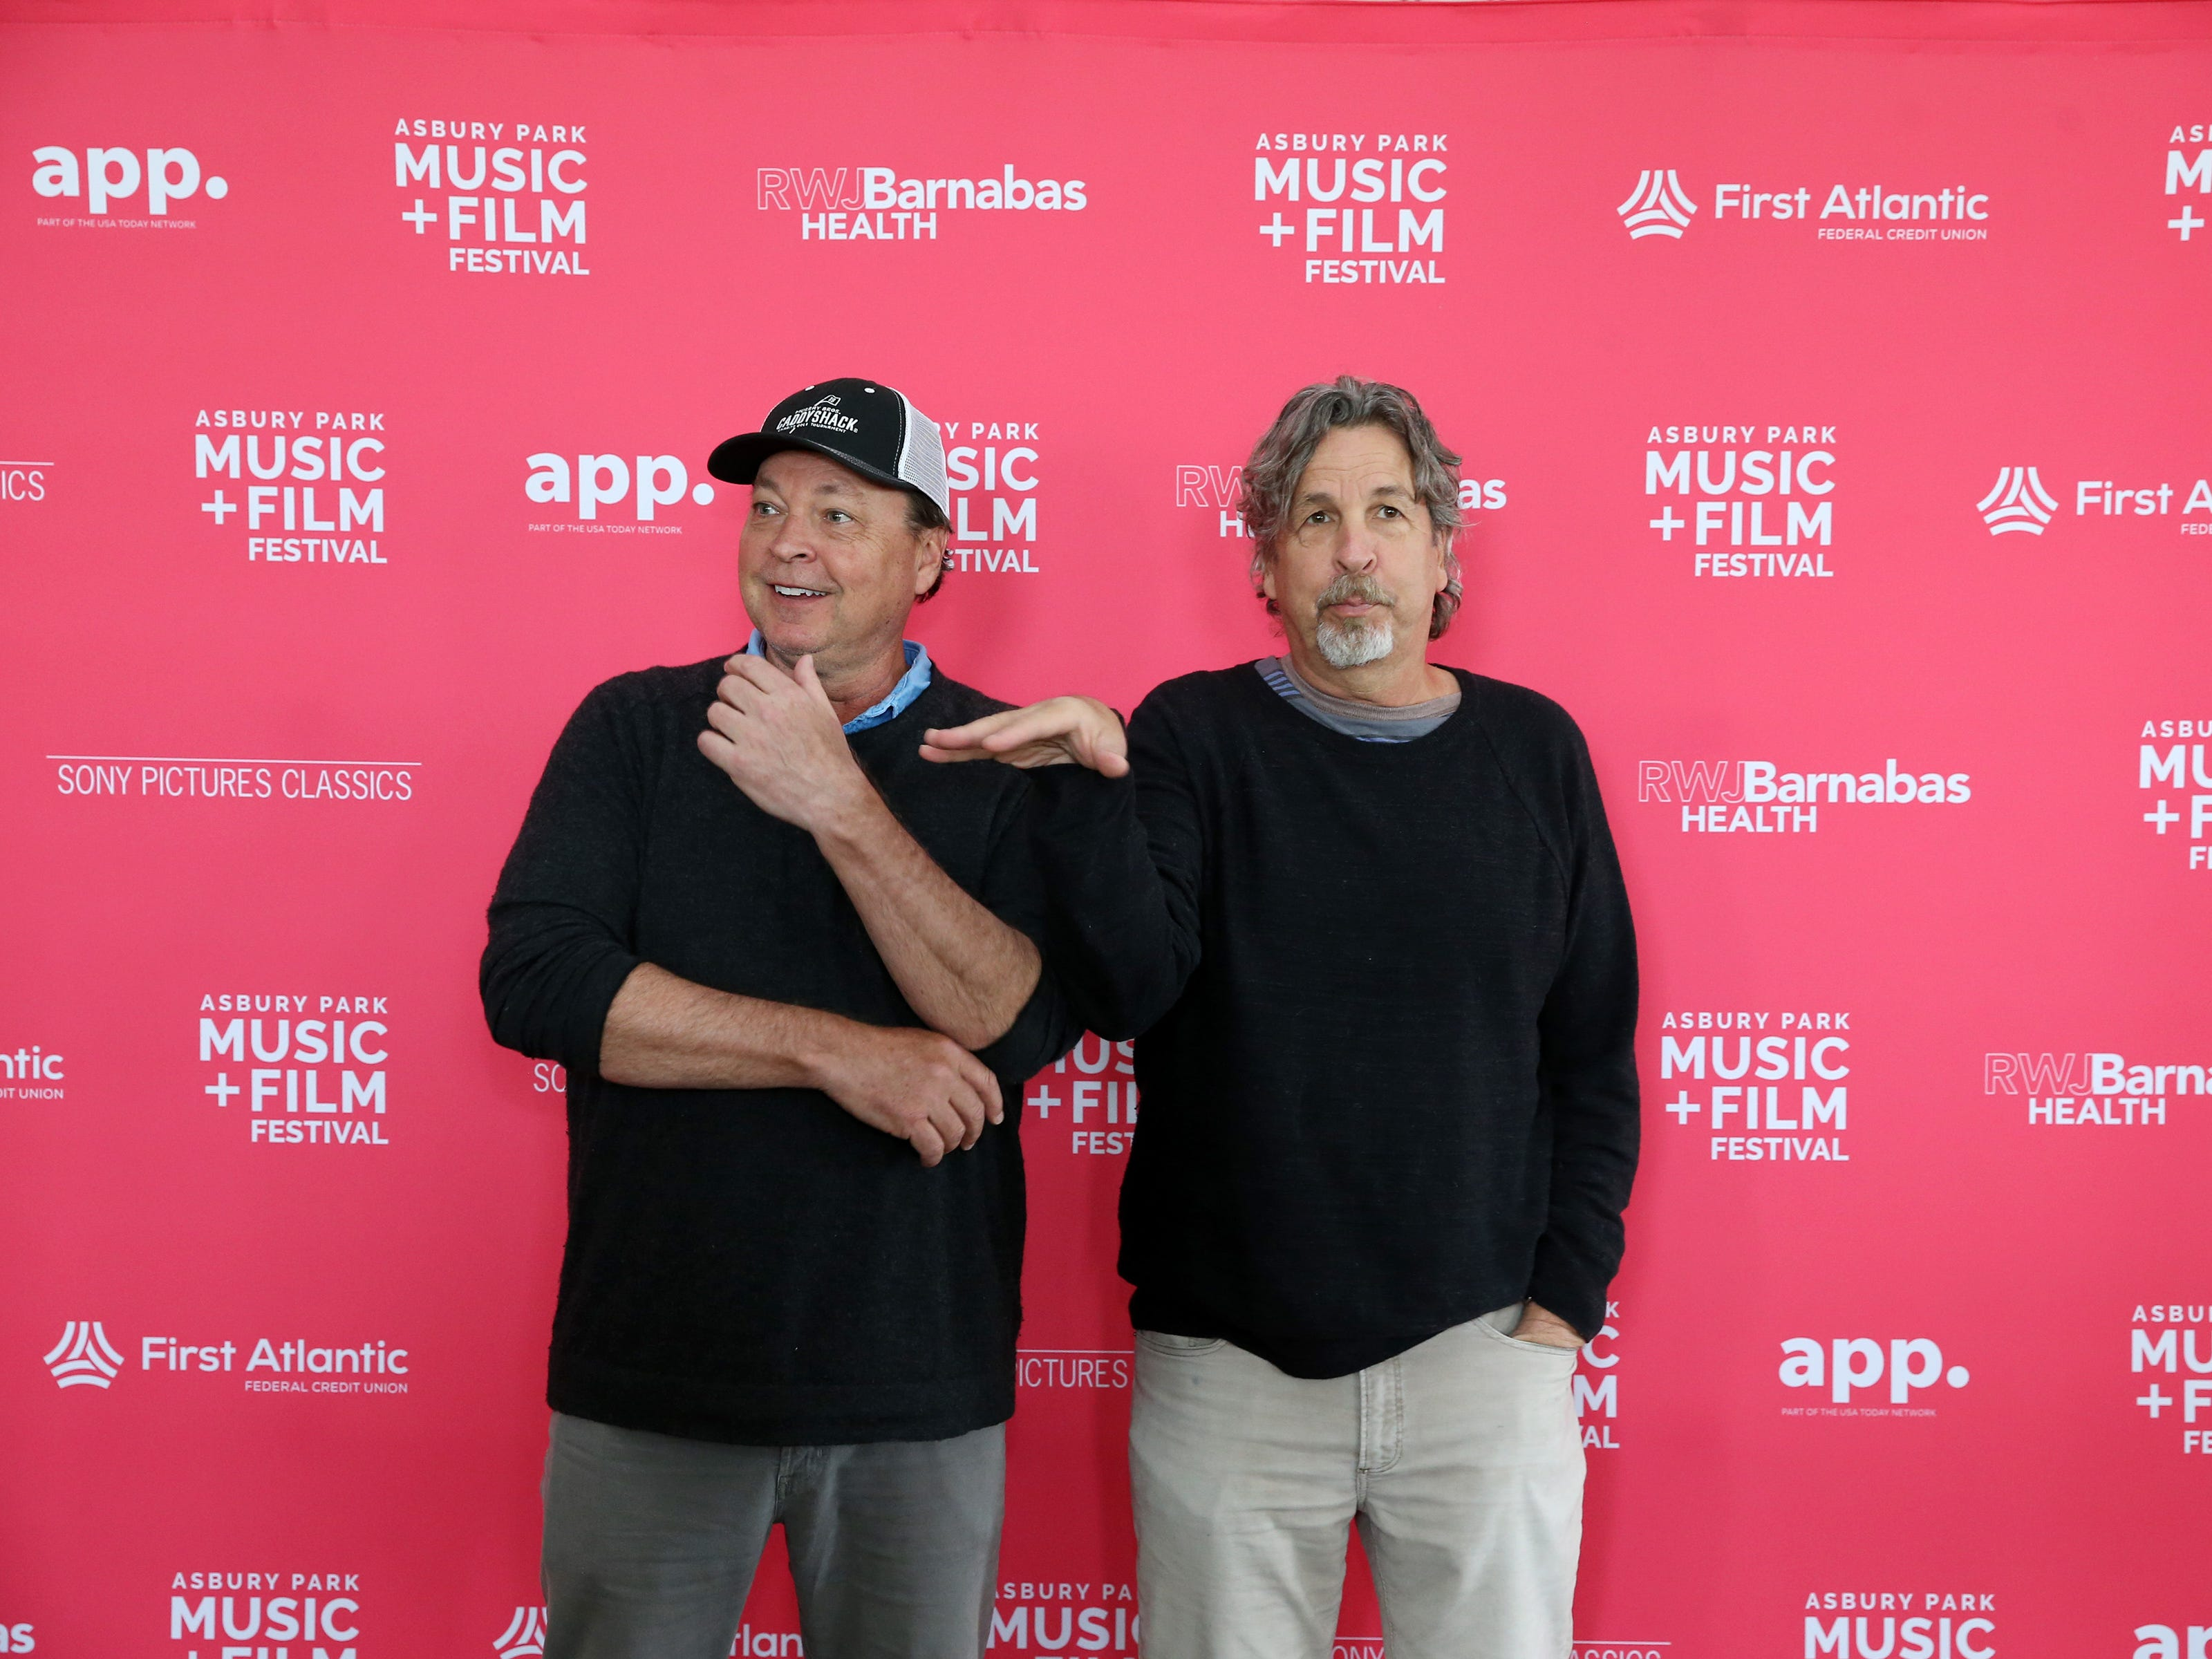 Bobby and Peter Farrelly greet the media and members of the APMFF advisory board at the Berkeley Oceanfront Hotel during the Asbury Park Music and Film Festival in Asbury Park, NJ Sunday, April 28, 2019.  #APMFF